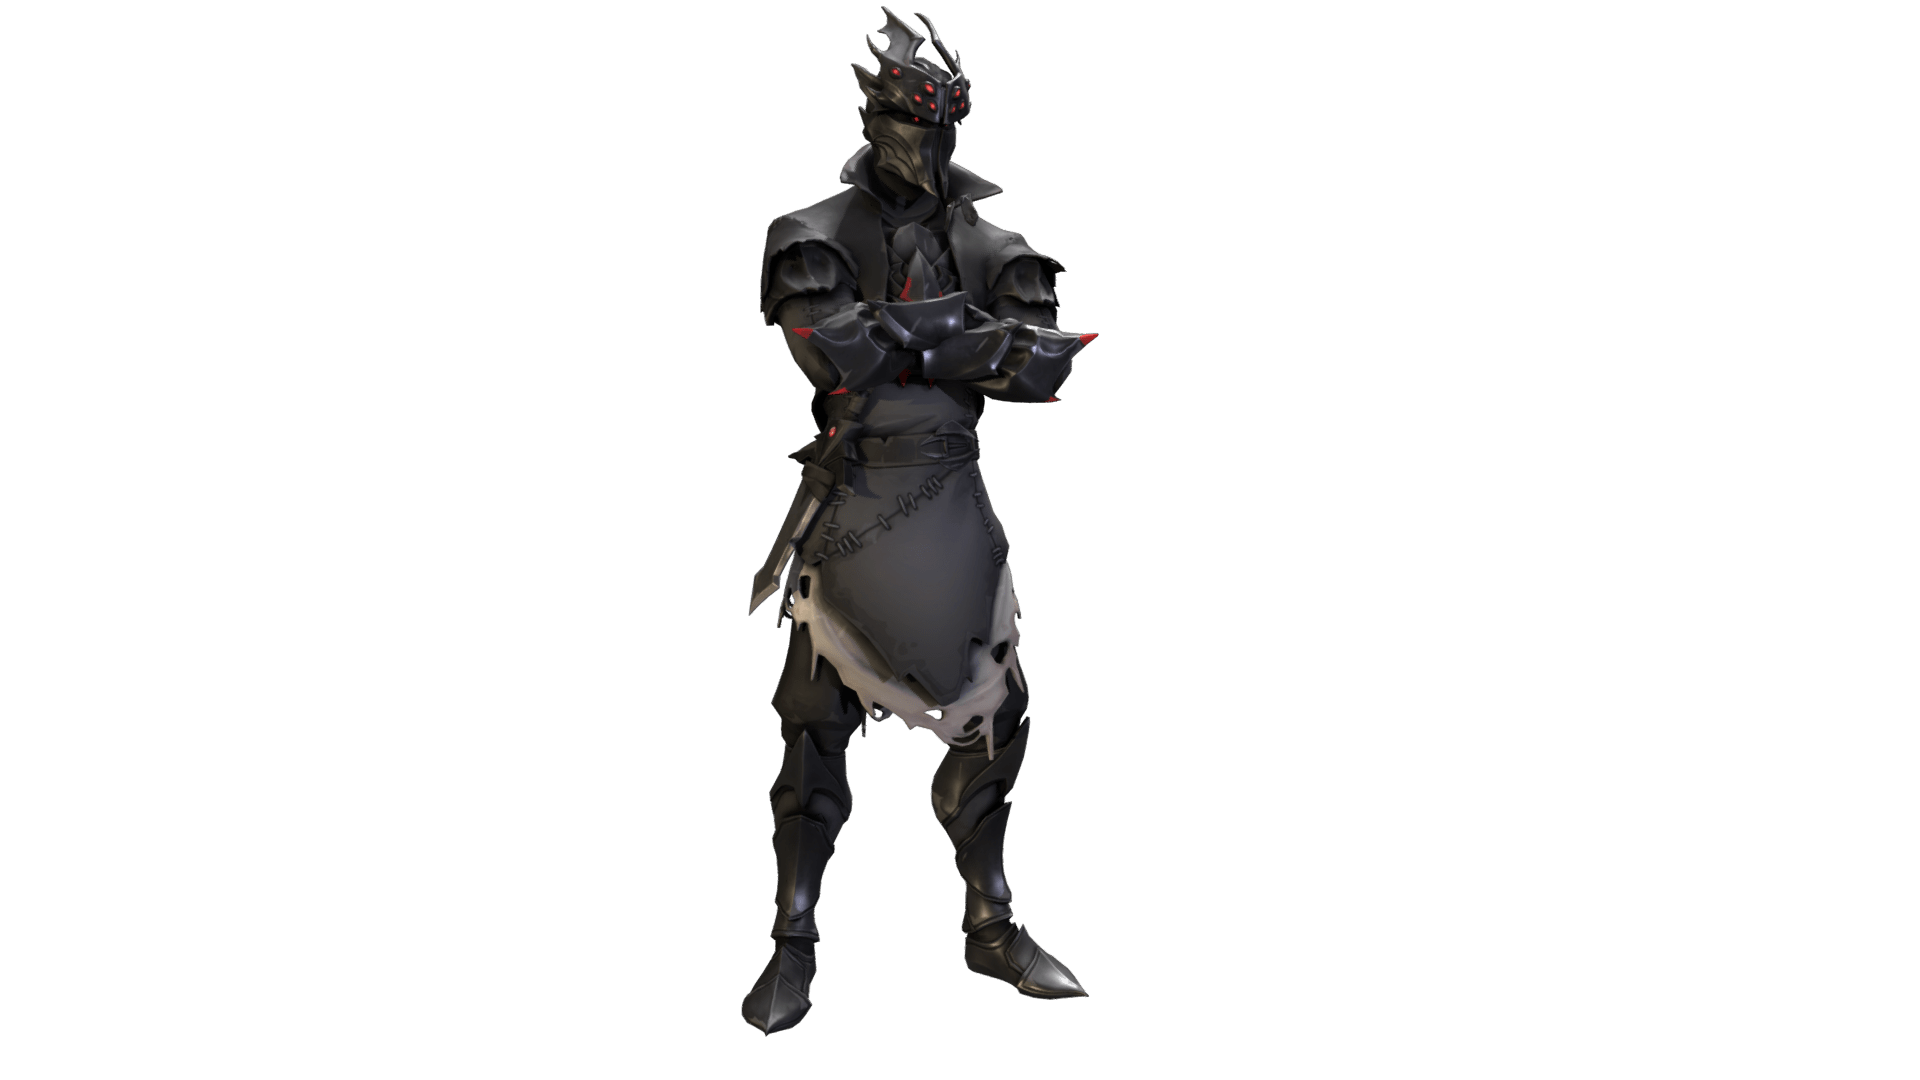 Spider outfits skins screenshots. Black knight png fortnite freeuse stock